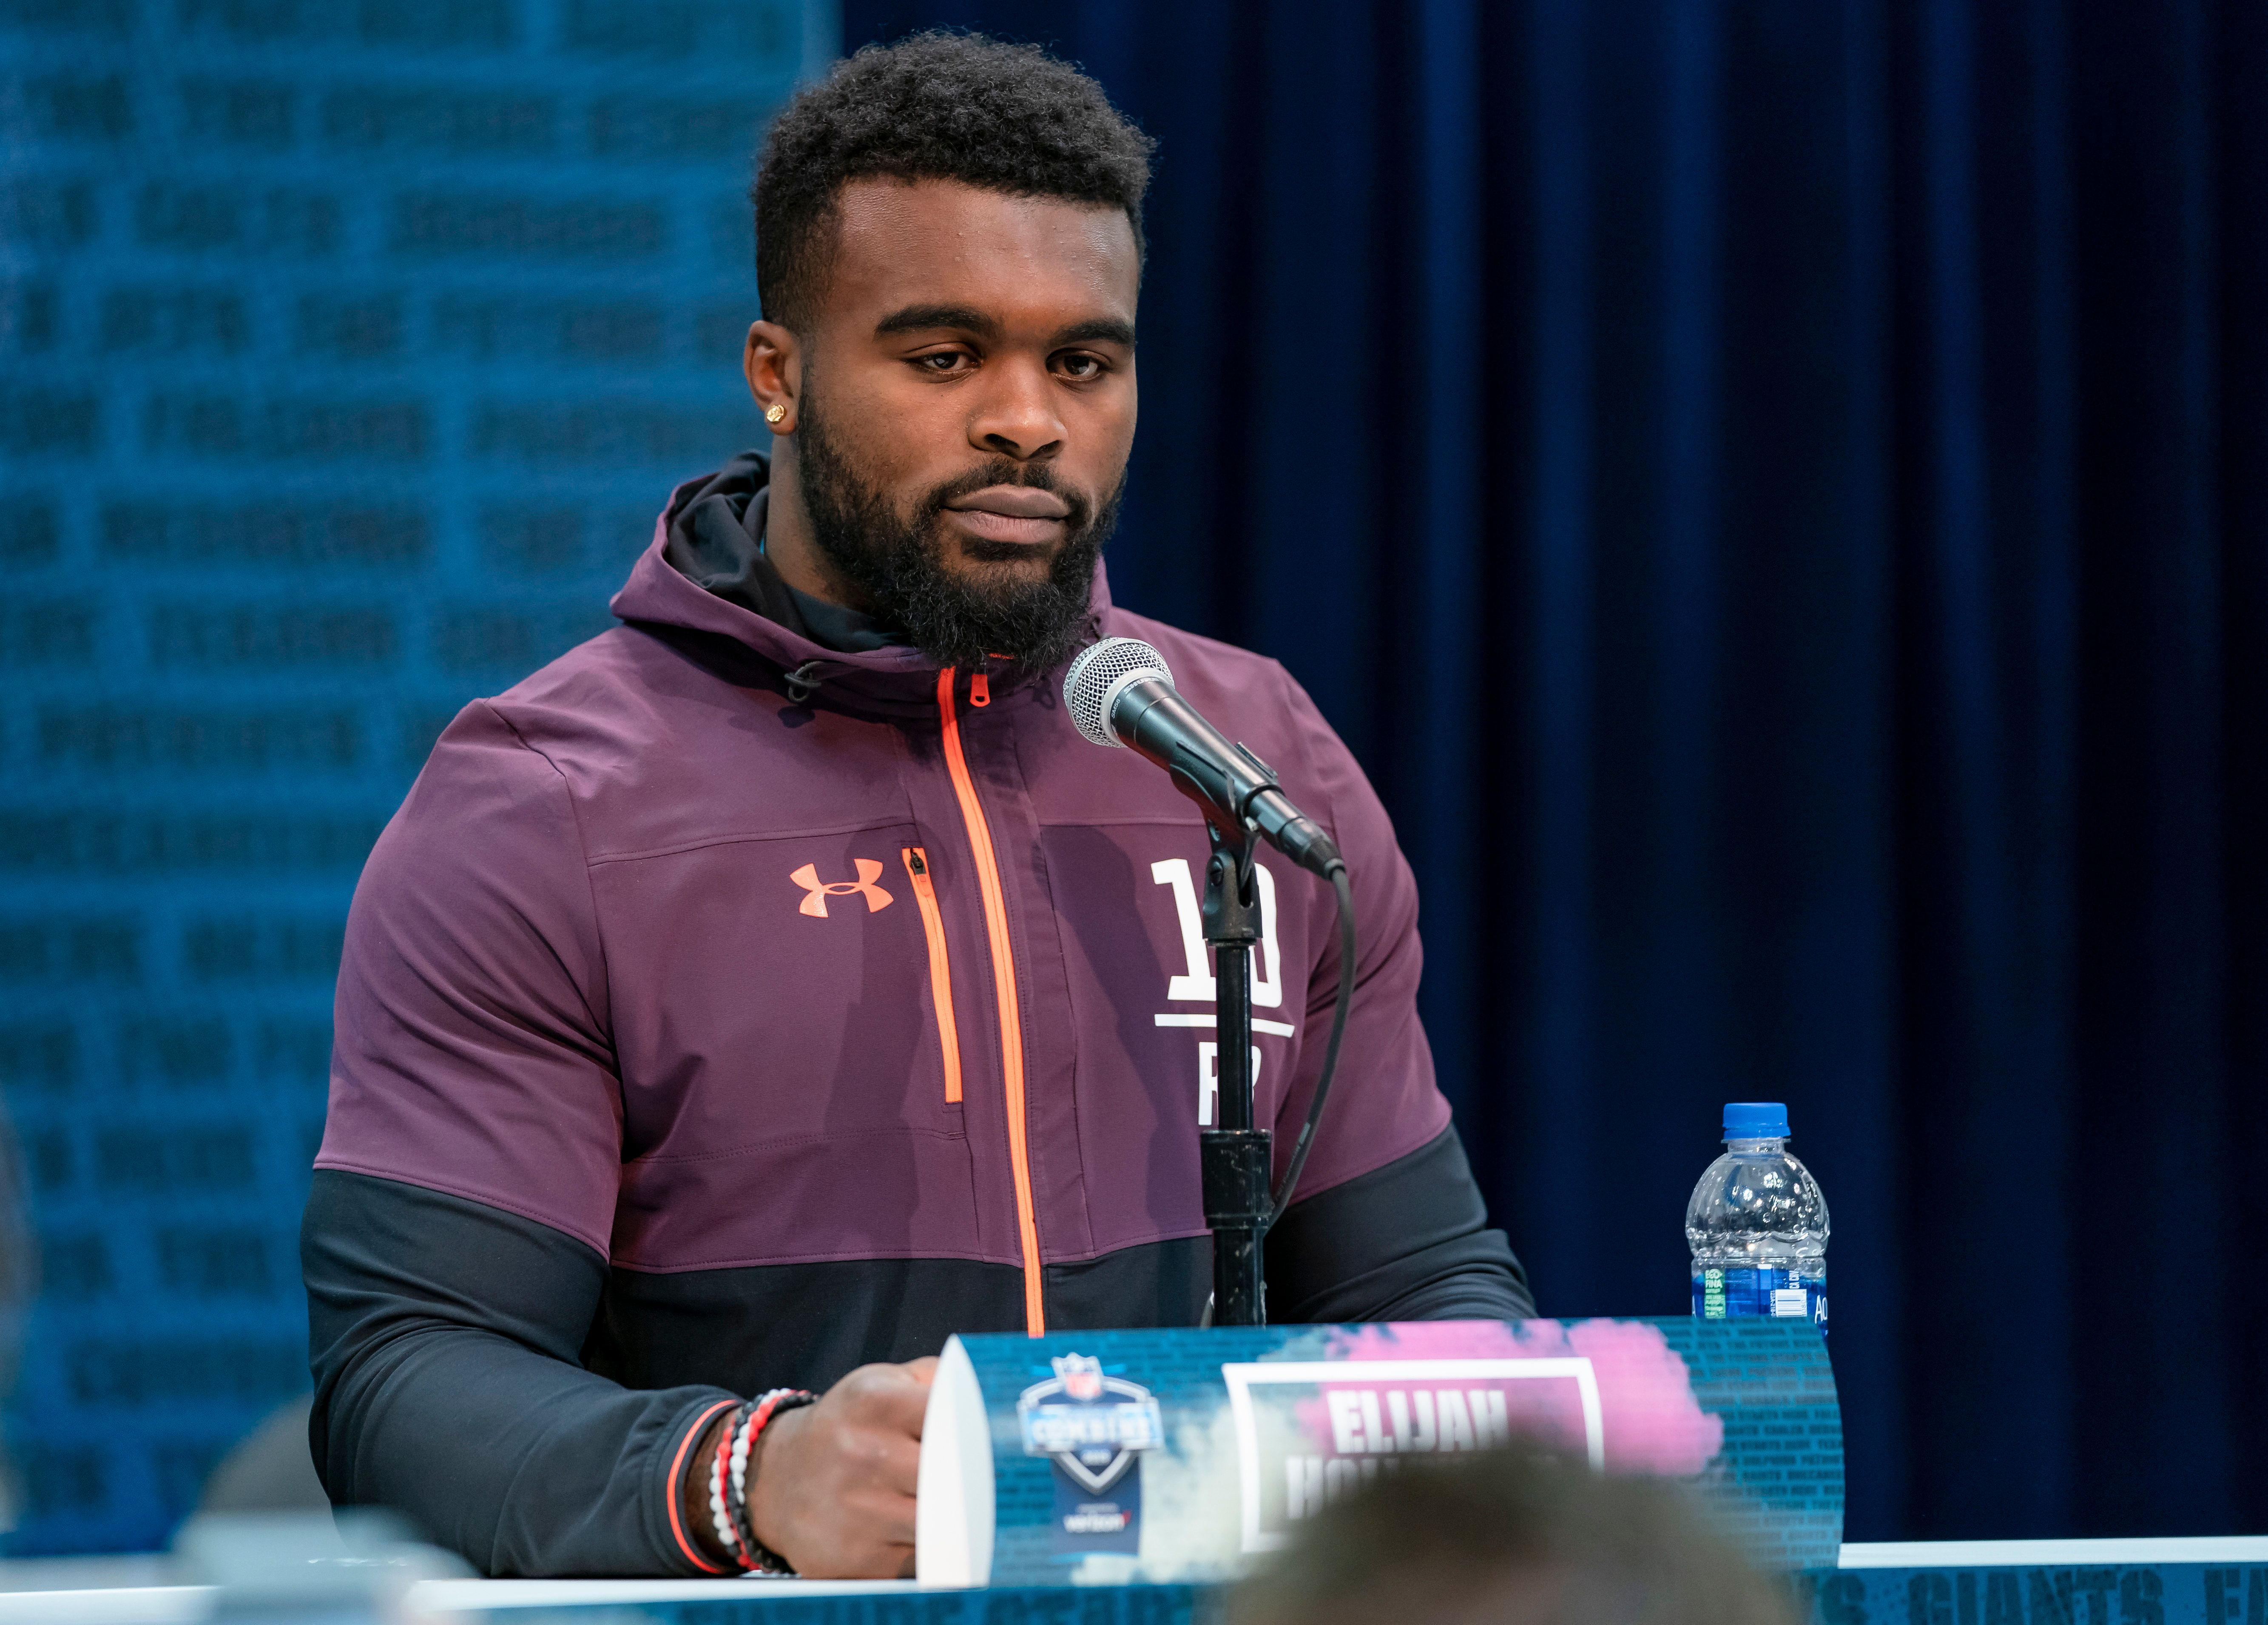 Elijah Holyfield raised more questions than answers with his 40-yard dash time at the combine. (Getty)